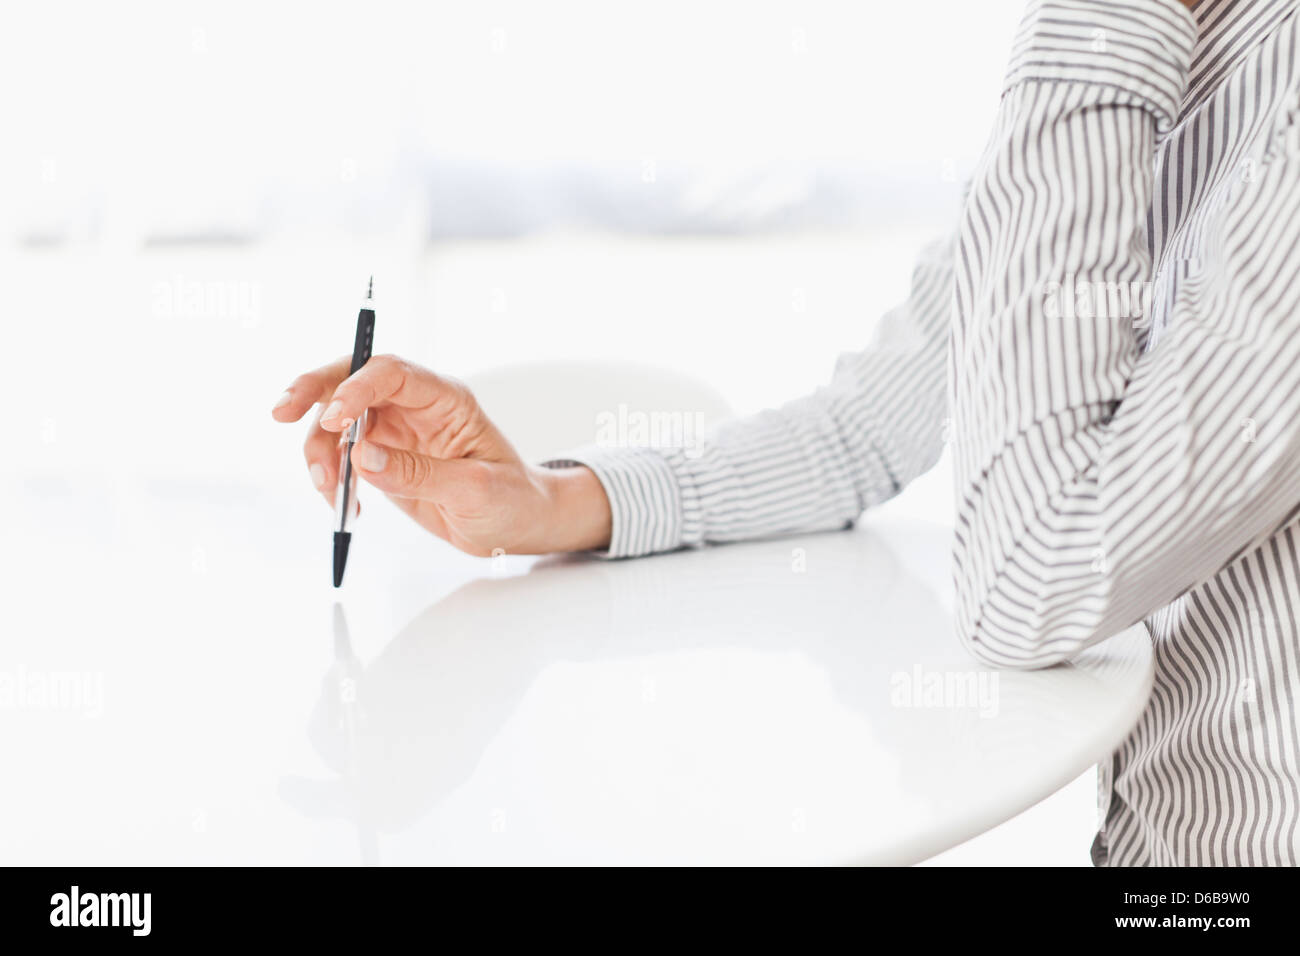 Businessman tapping pen on desk Stock Photo